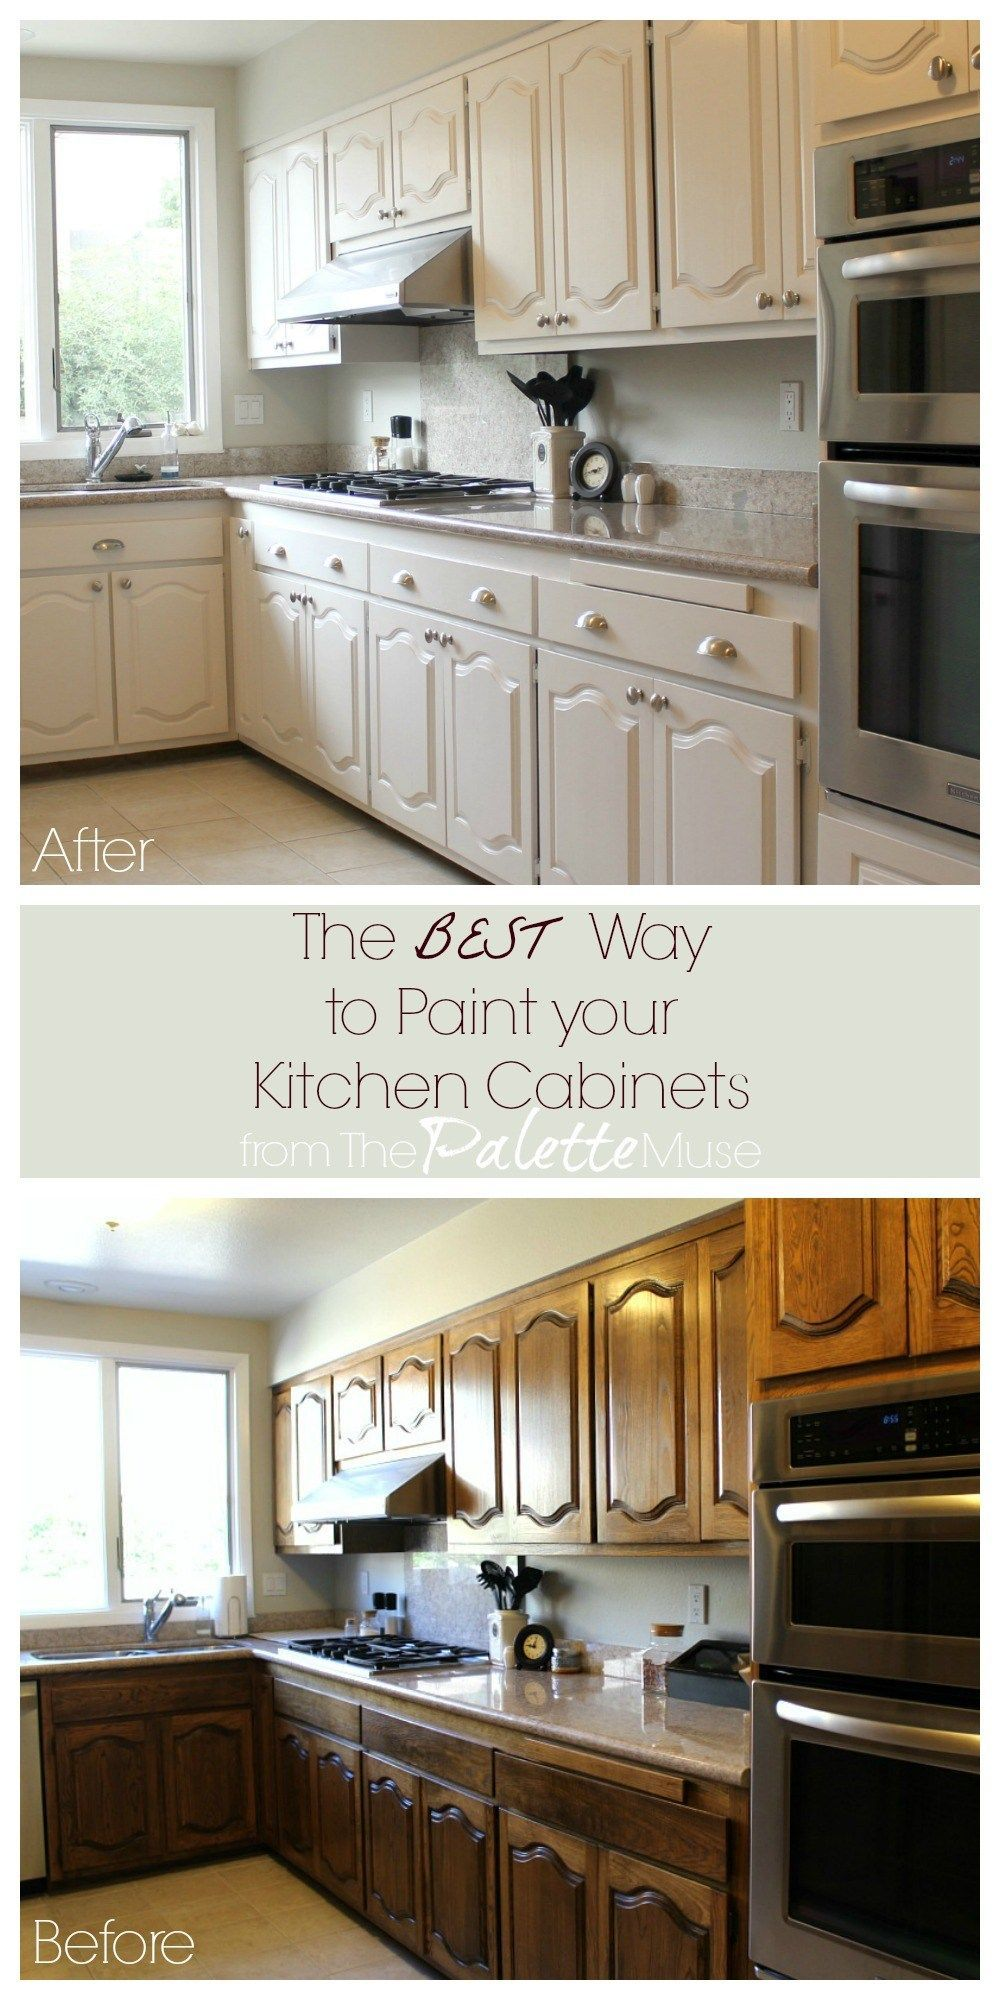 The palette muse best way to paint kitchen cabinets with americana wanting to makeover your dated kitchen well here are 8 inspiring kitchen renovations that you can do yourself solutioingenieria Gallery